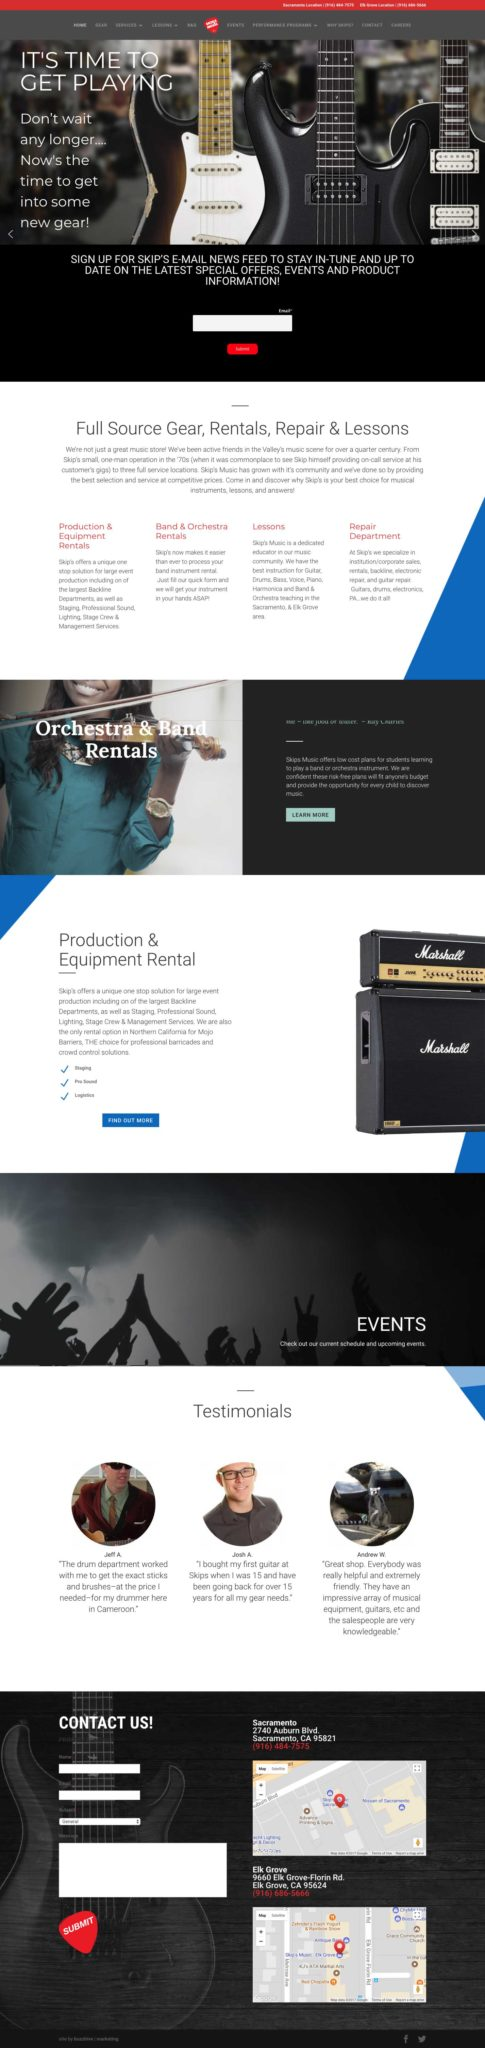 skipsmusic.com_ Web Design & Development